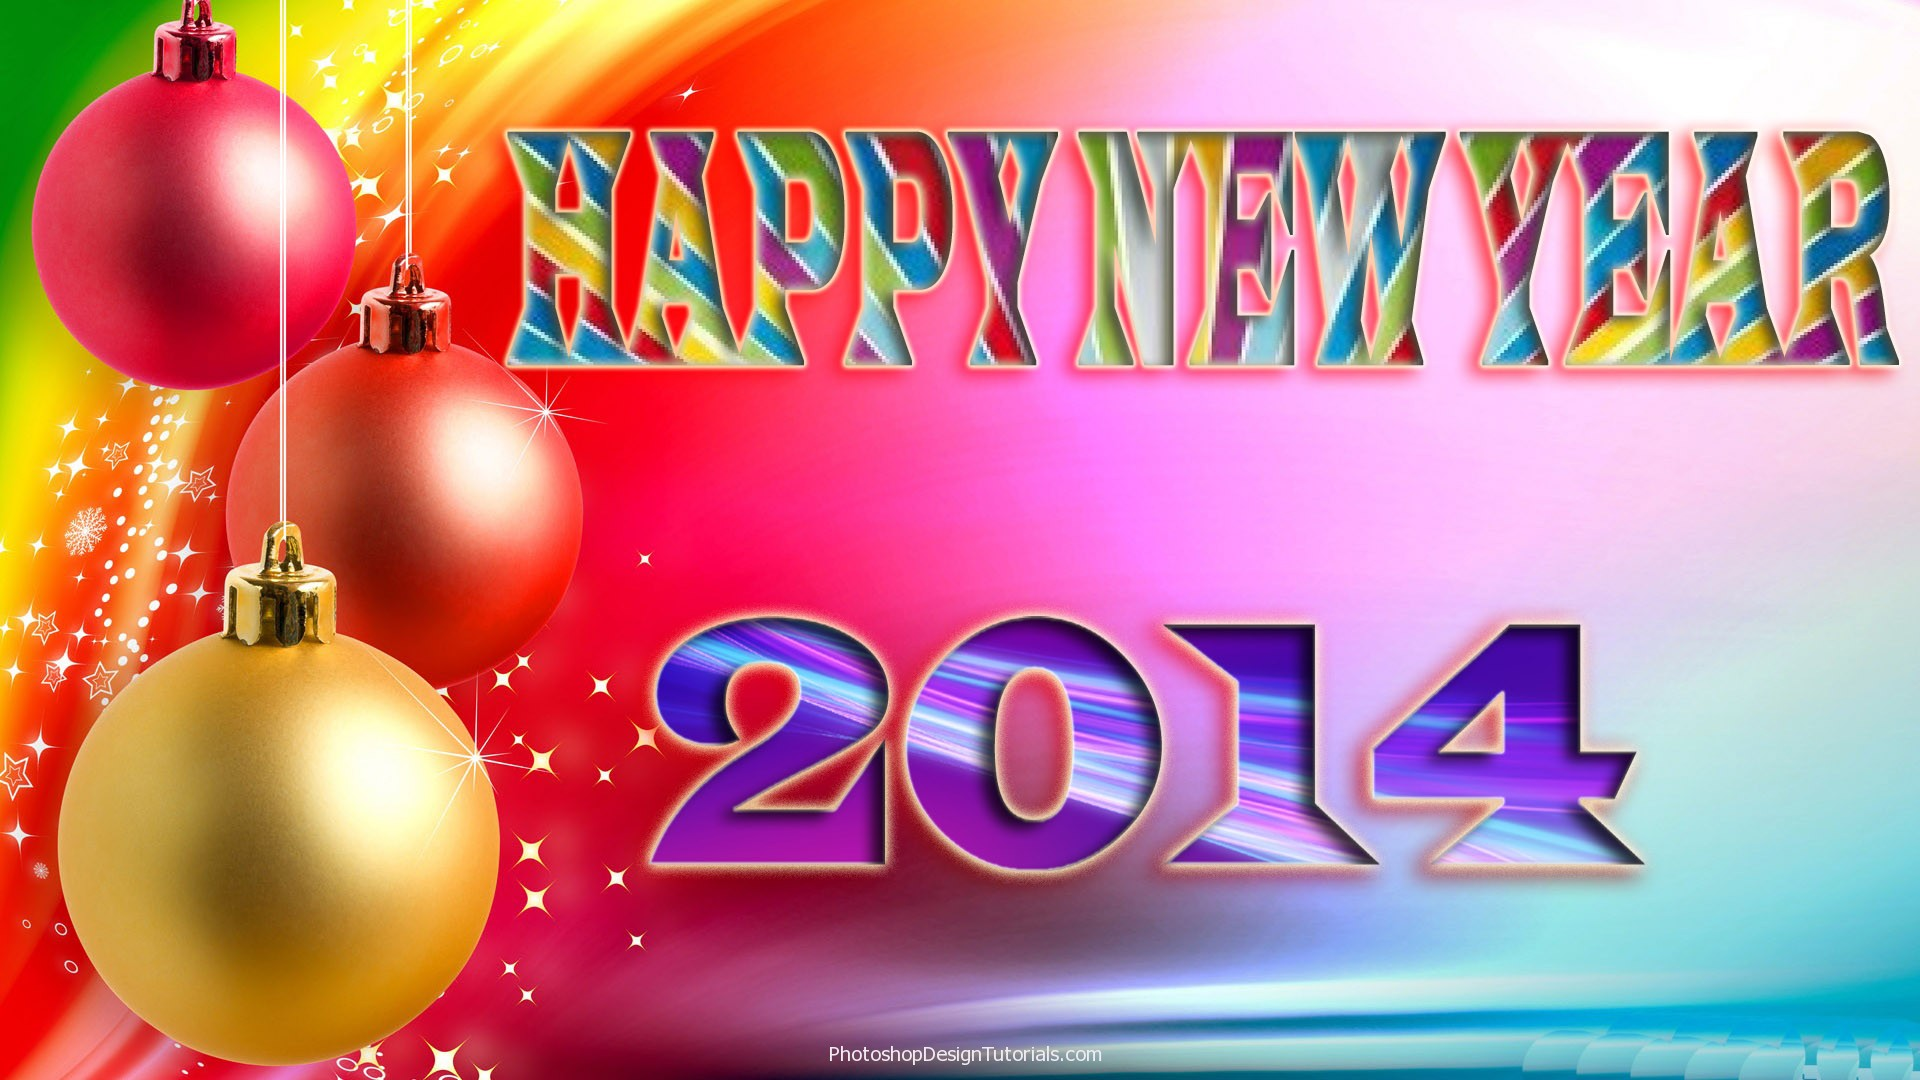 happy new year 2014 wallpapers Happy new year 2014 HD wallpapers 1920x1080